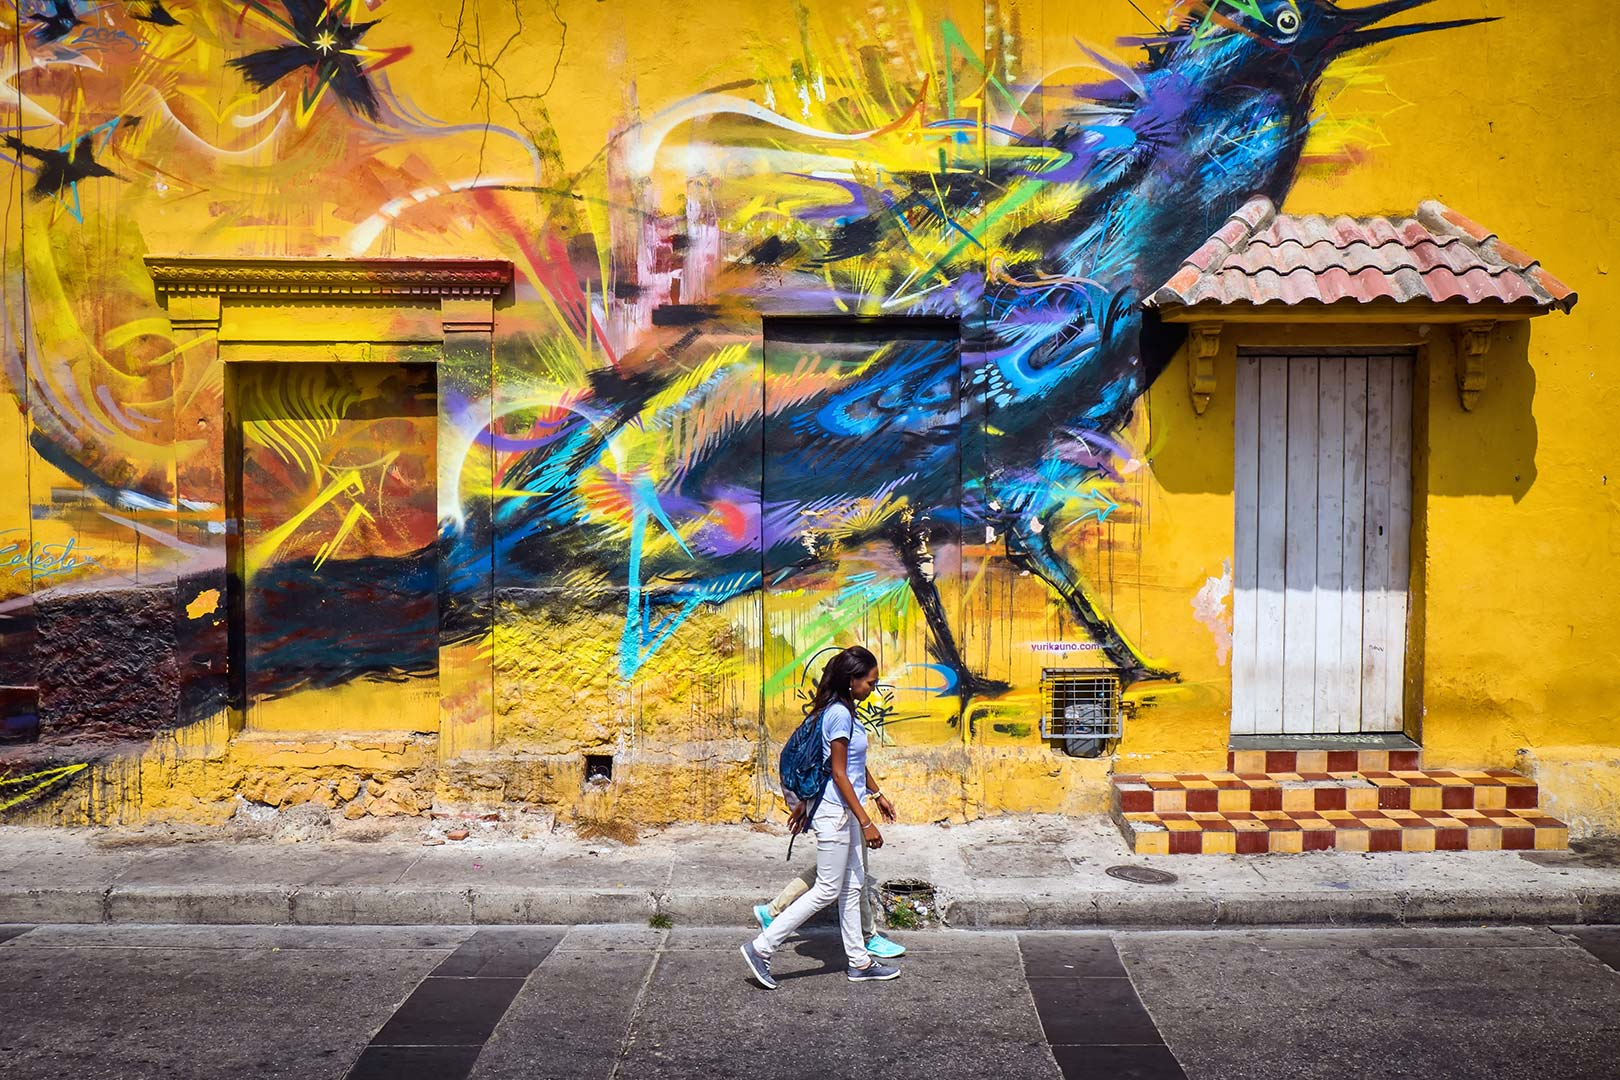 Picture of a mural in the Getsemaní neighborhood, Cartagena, Colombia